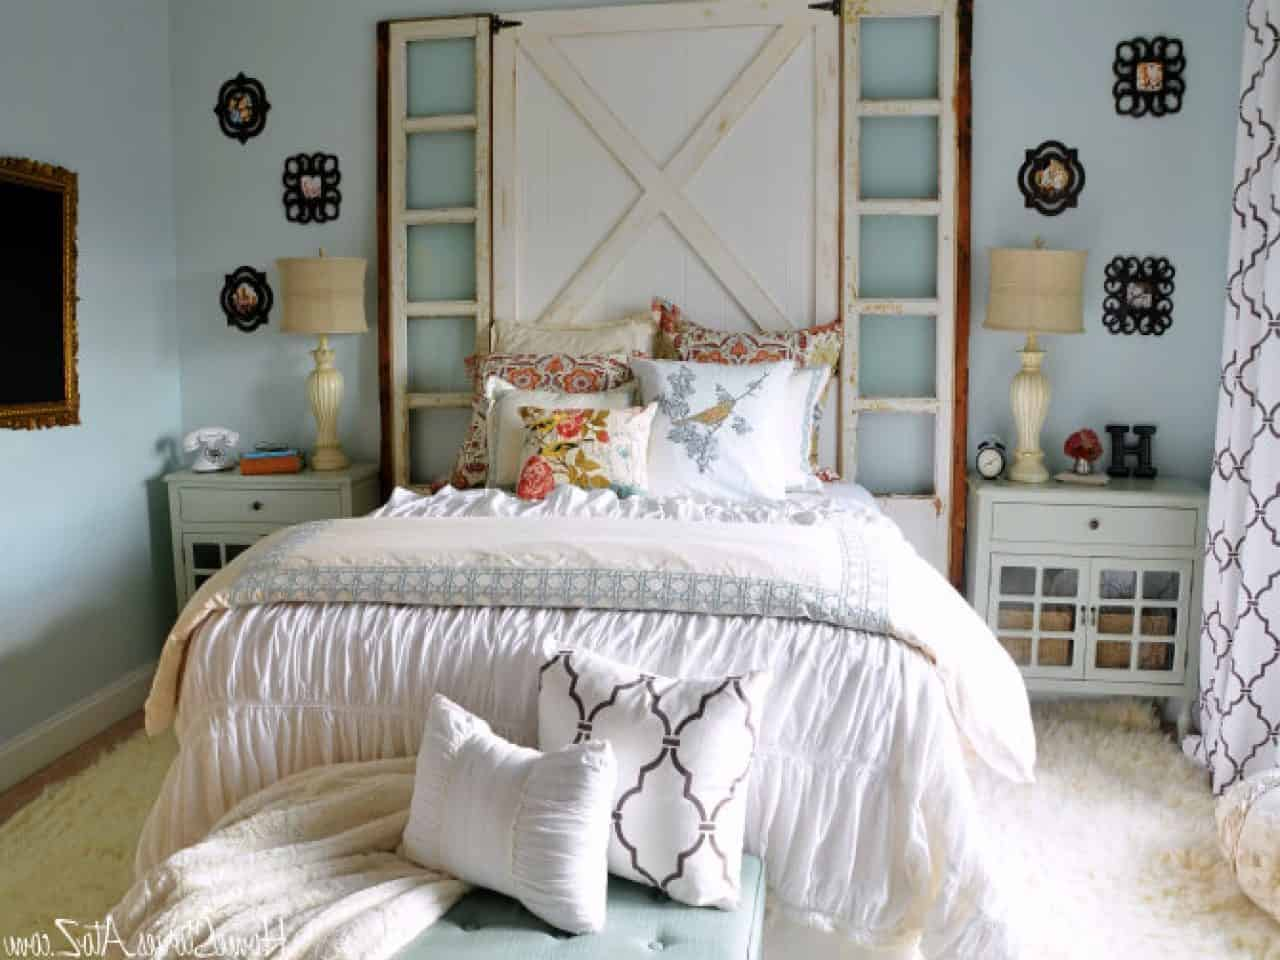 wooden bedroom decr Trendy Shabby Chic Ideas Youll Want to Try ASAP